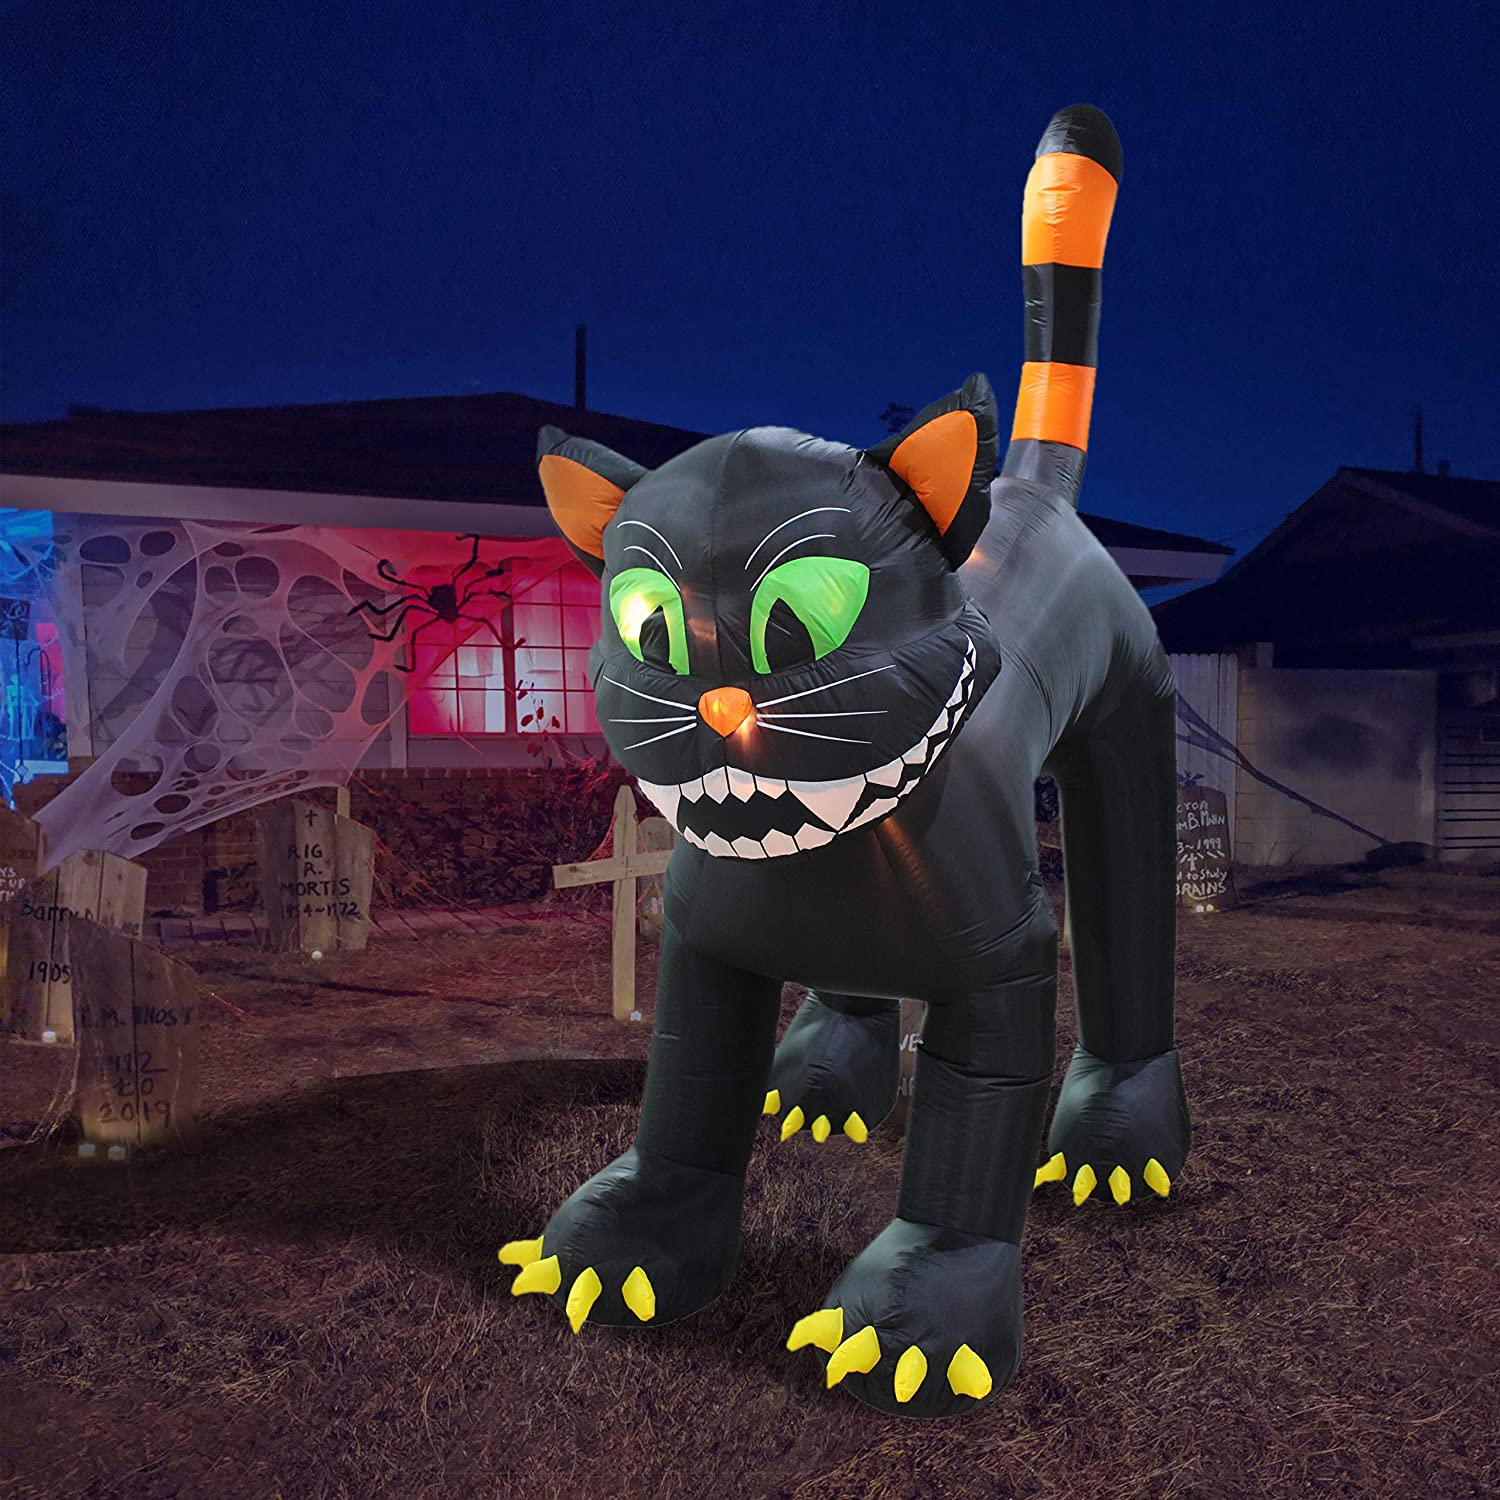 11 Foot Tall Animated Halloween Inflatable Black Cat